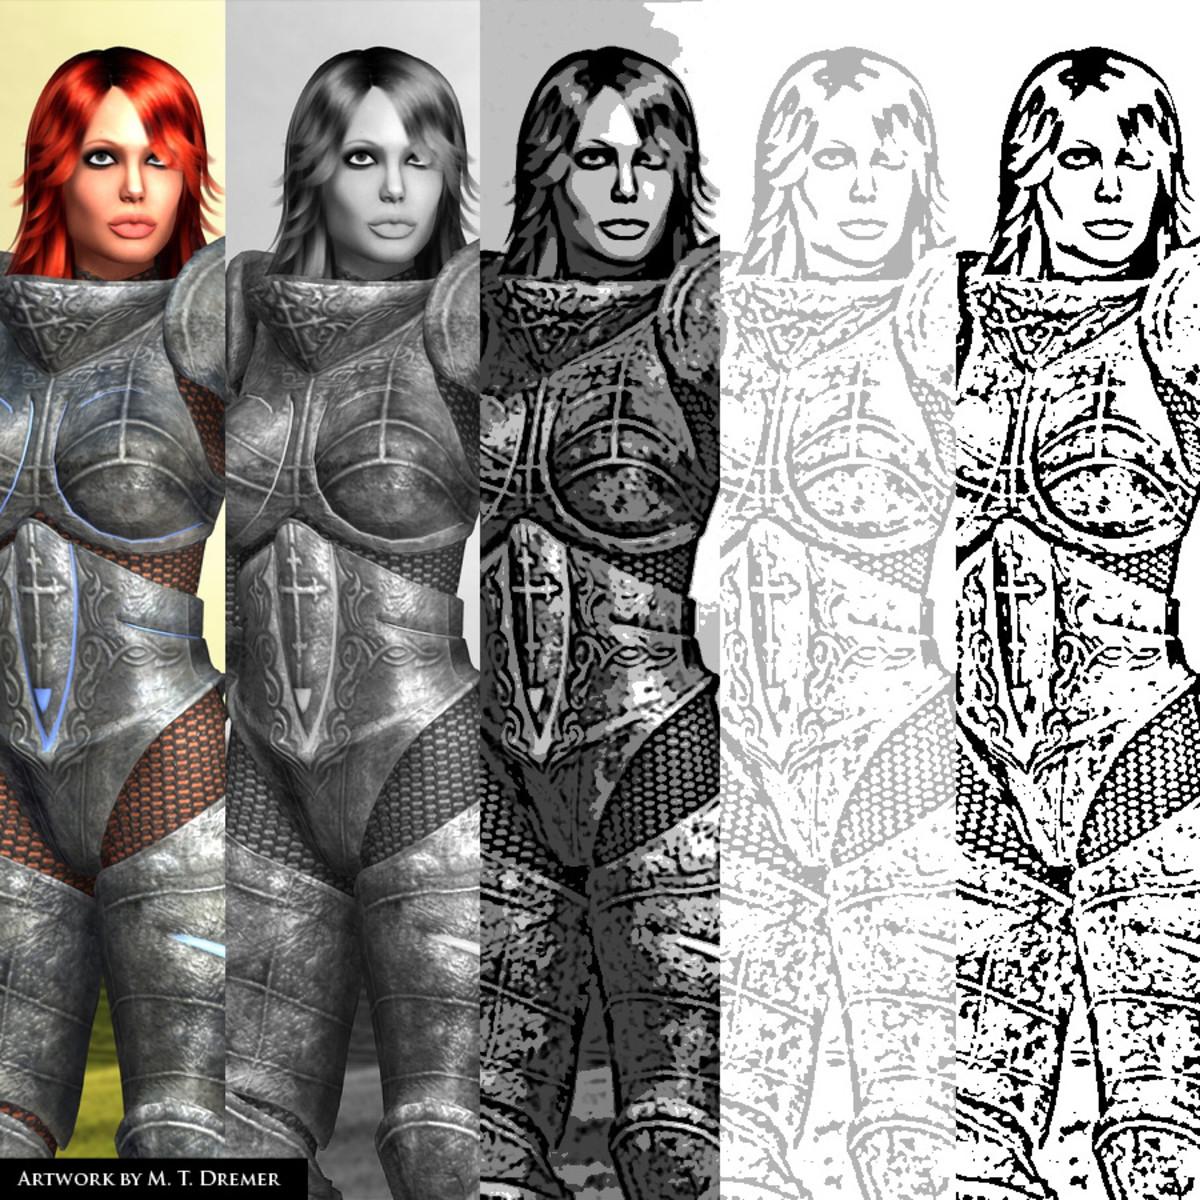 In order, from left to right, starting with the original render. Notice the difference from the cover picture, which was rendered with lighter textures.